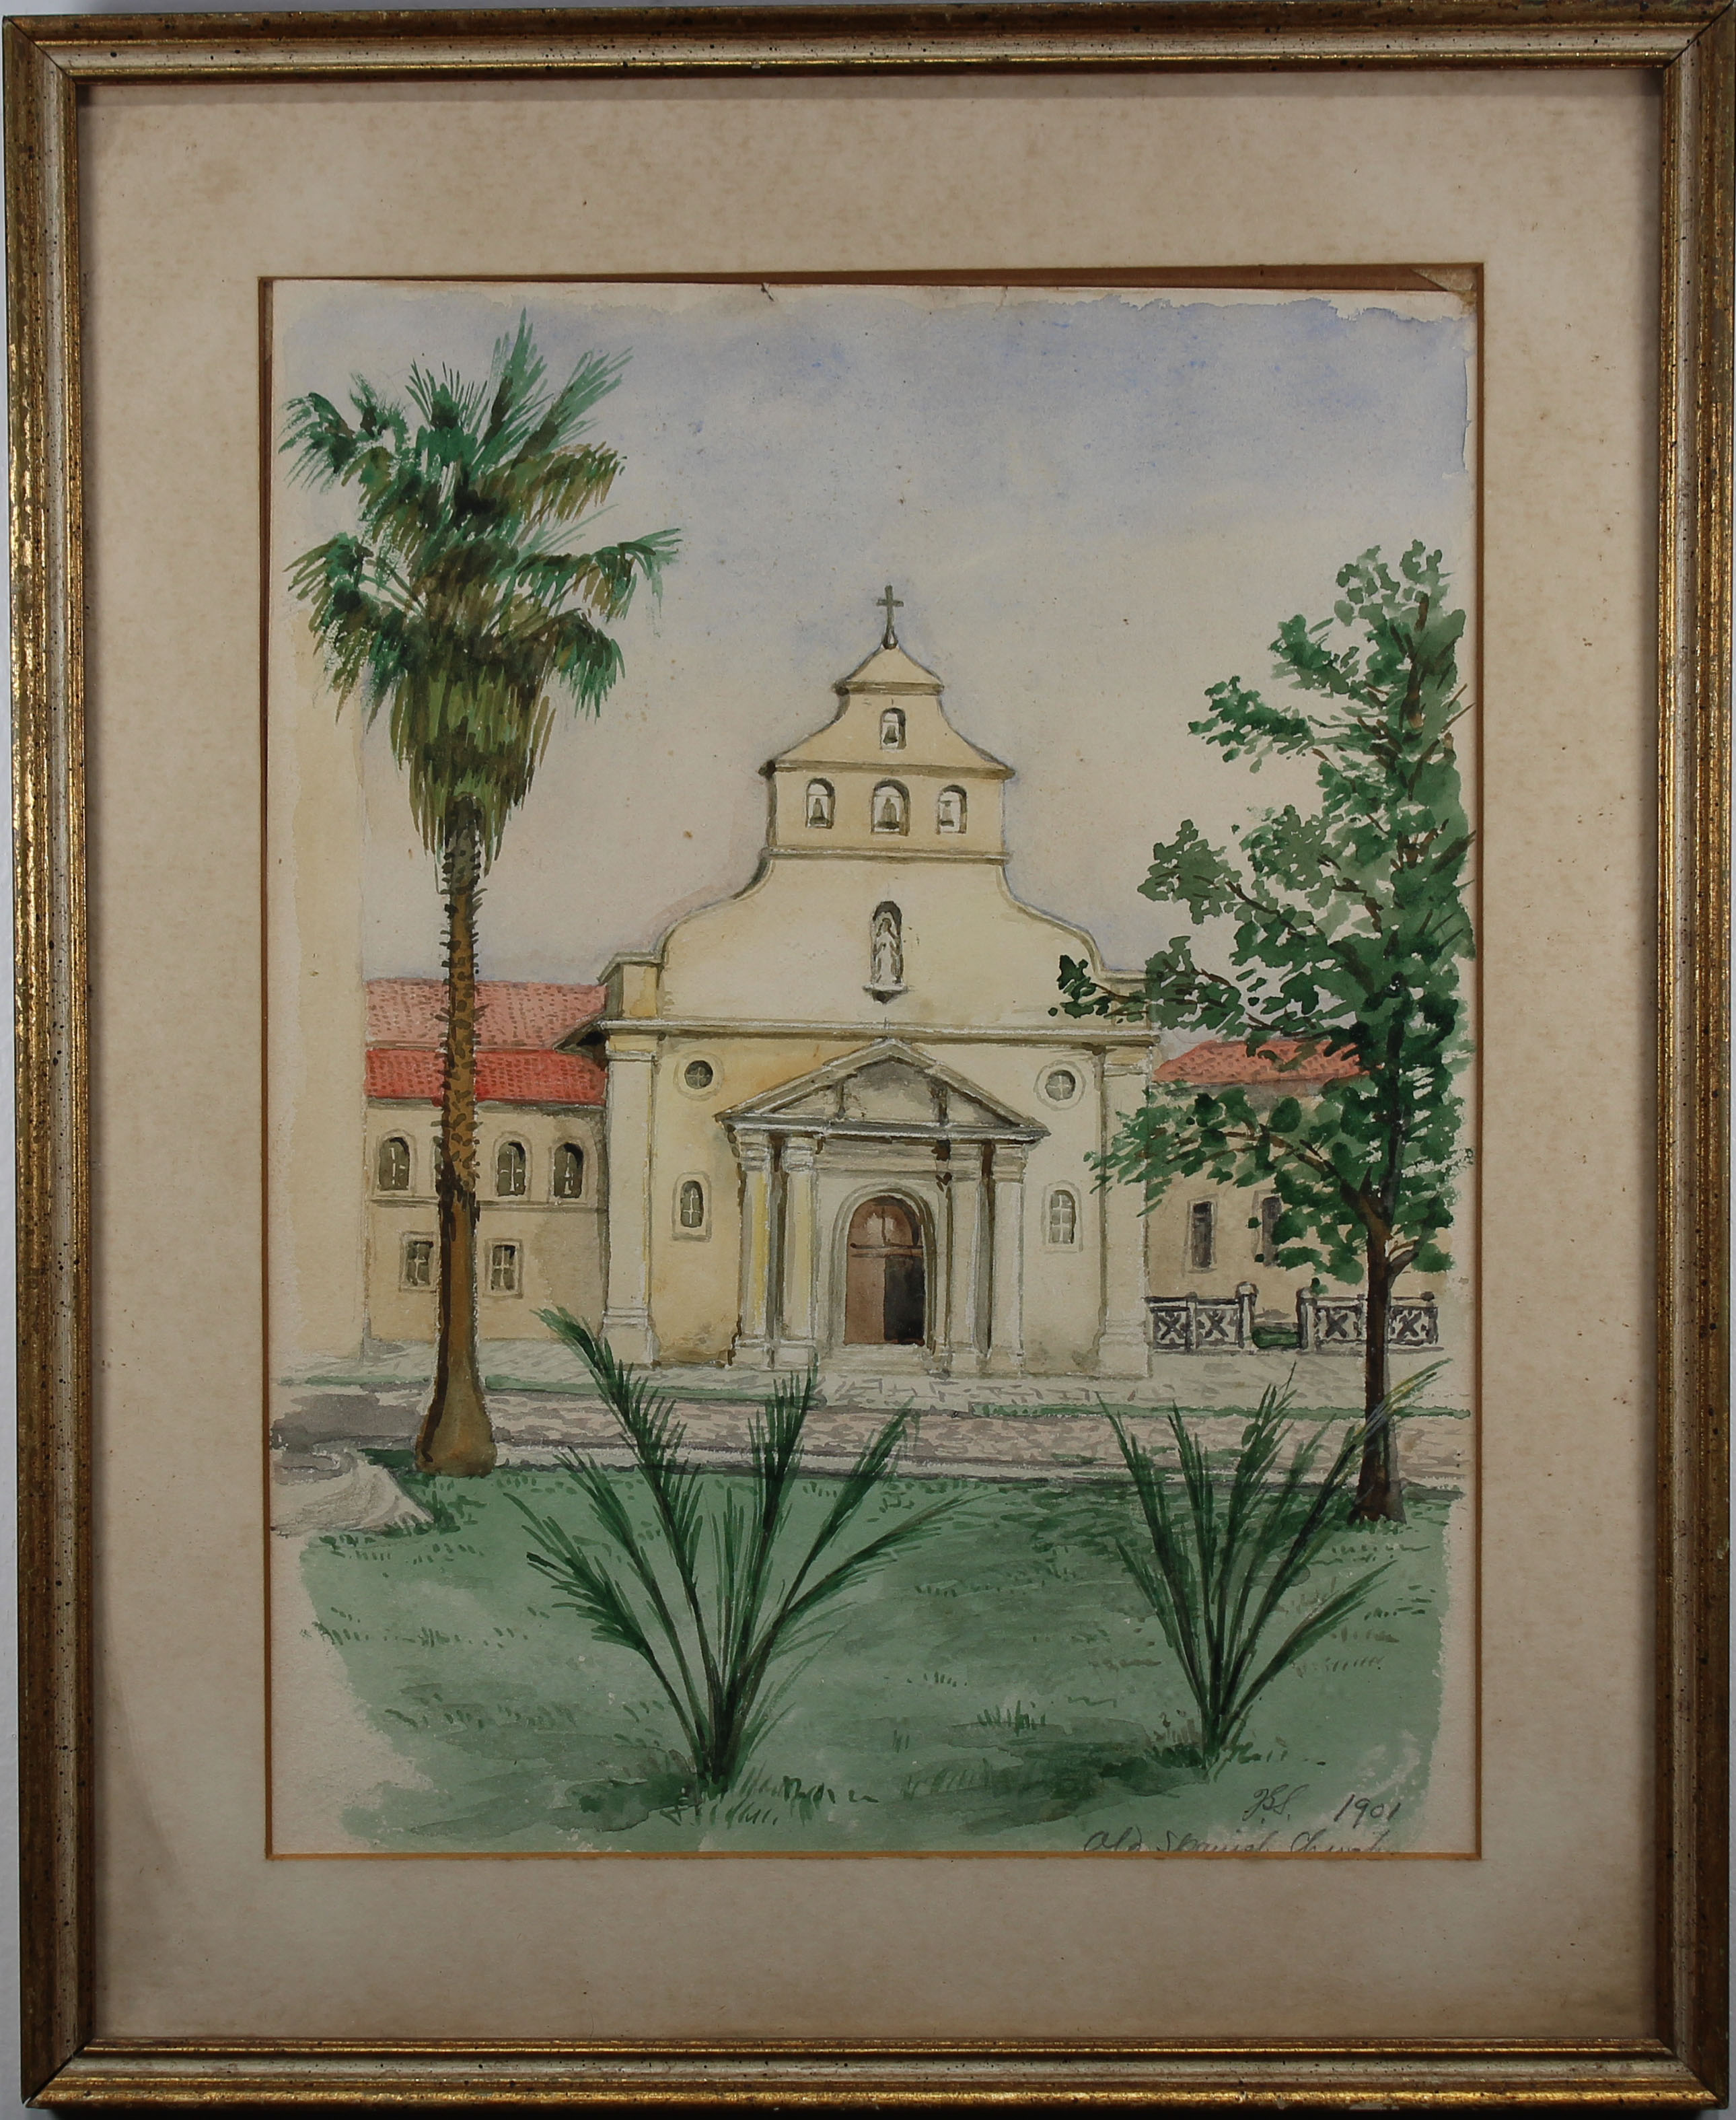 Lot 269 - Signed JSS, 1901 W/C San Rafael Mission California